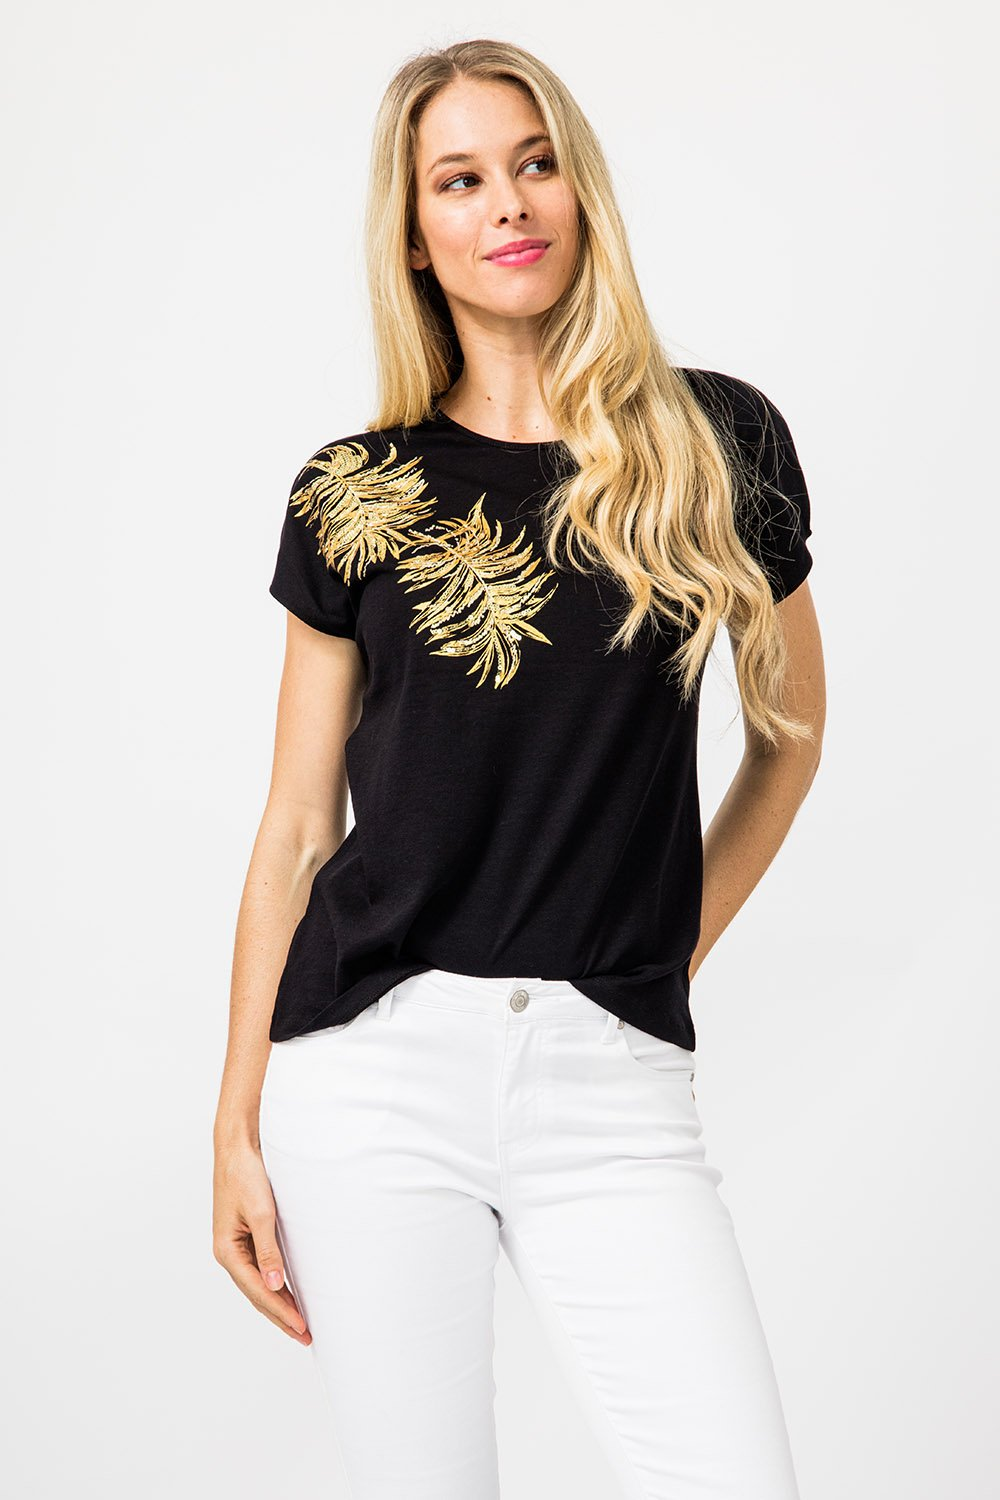 T-Shirt Lissy - The Fashionboutique - Colloseum